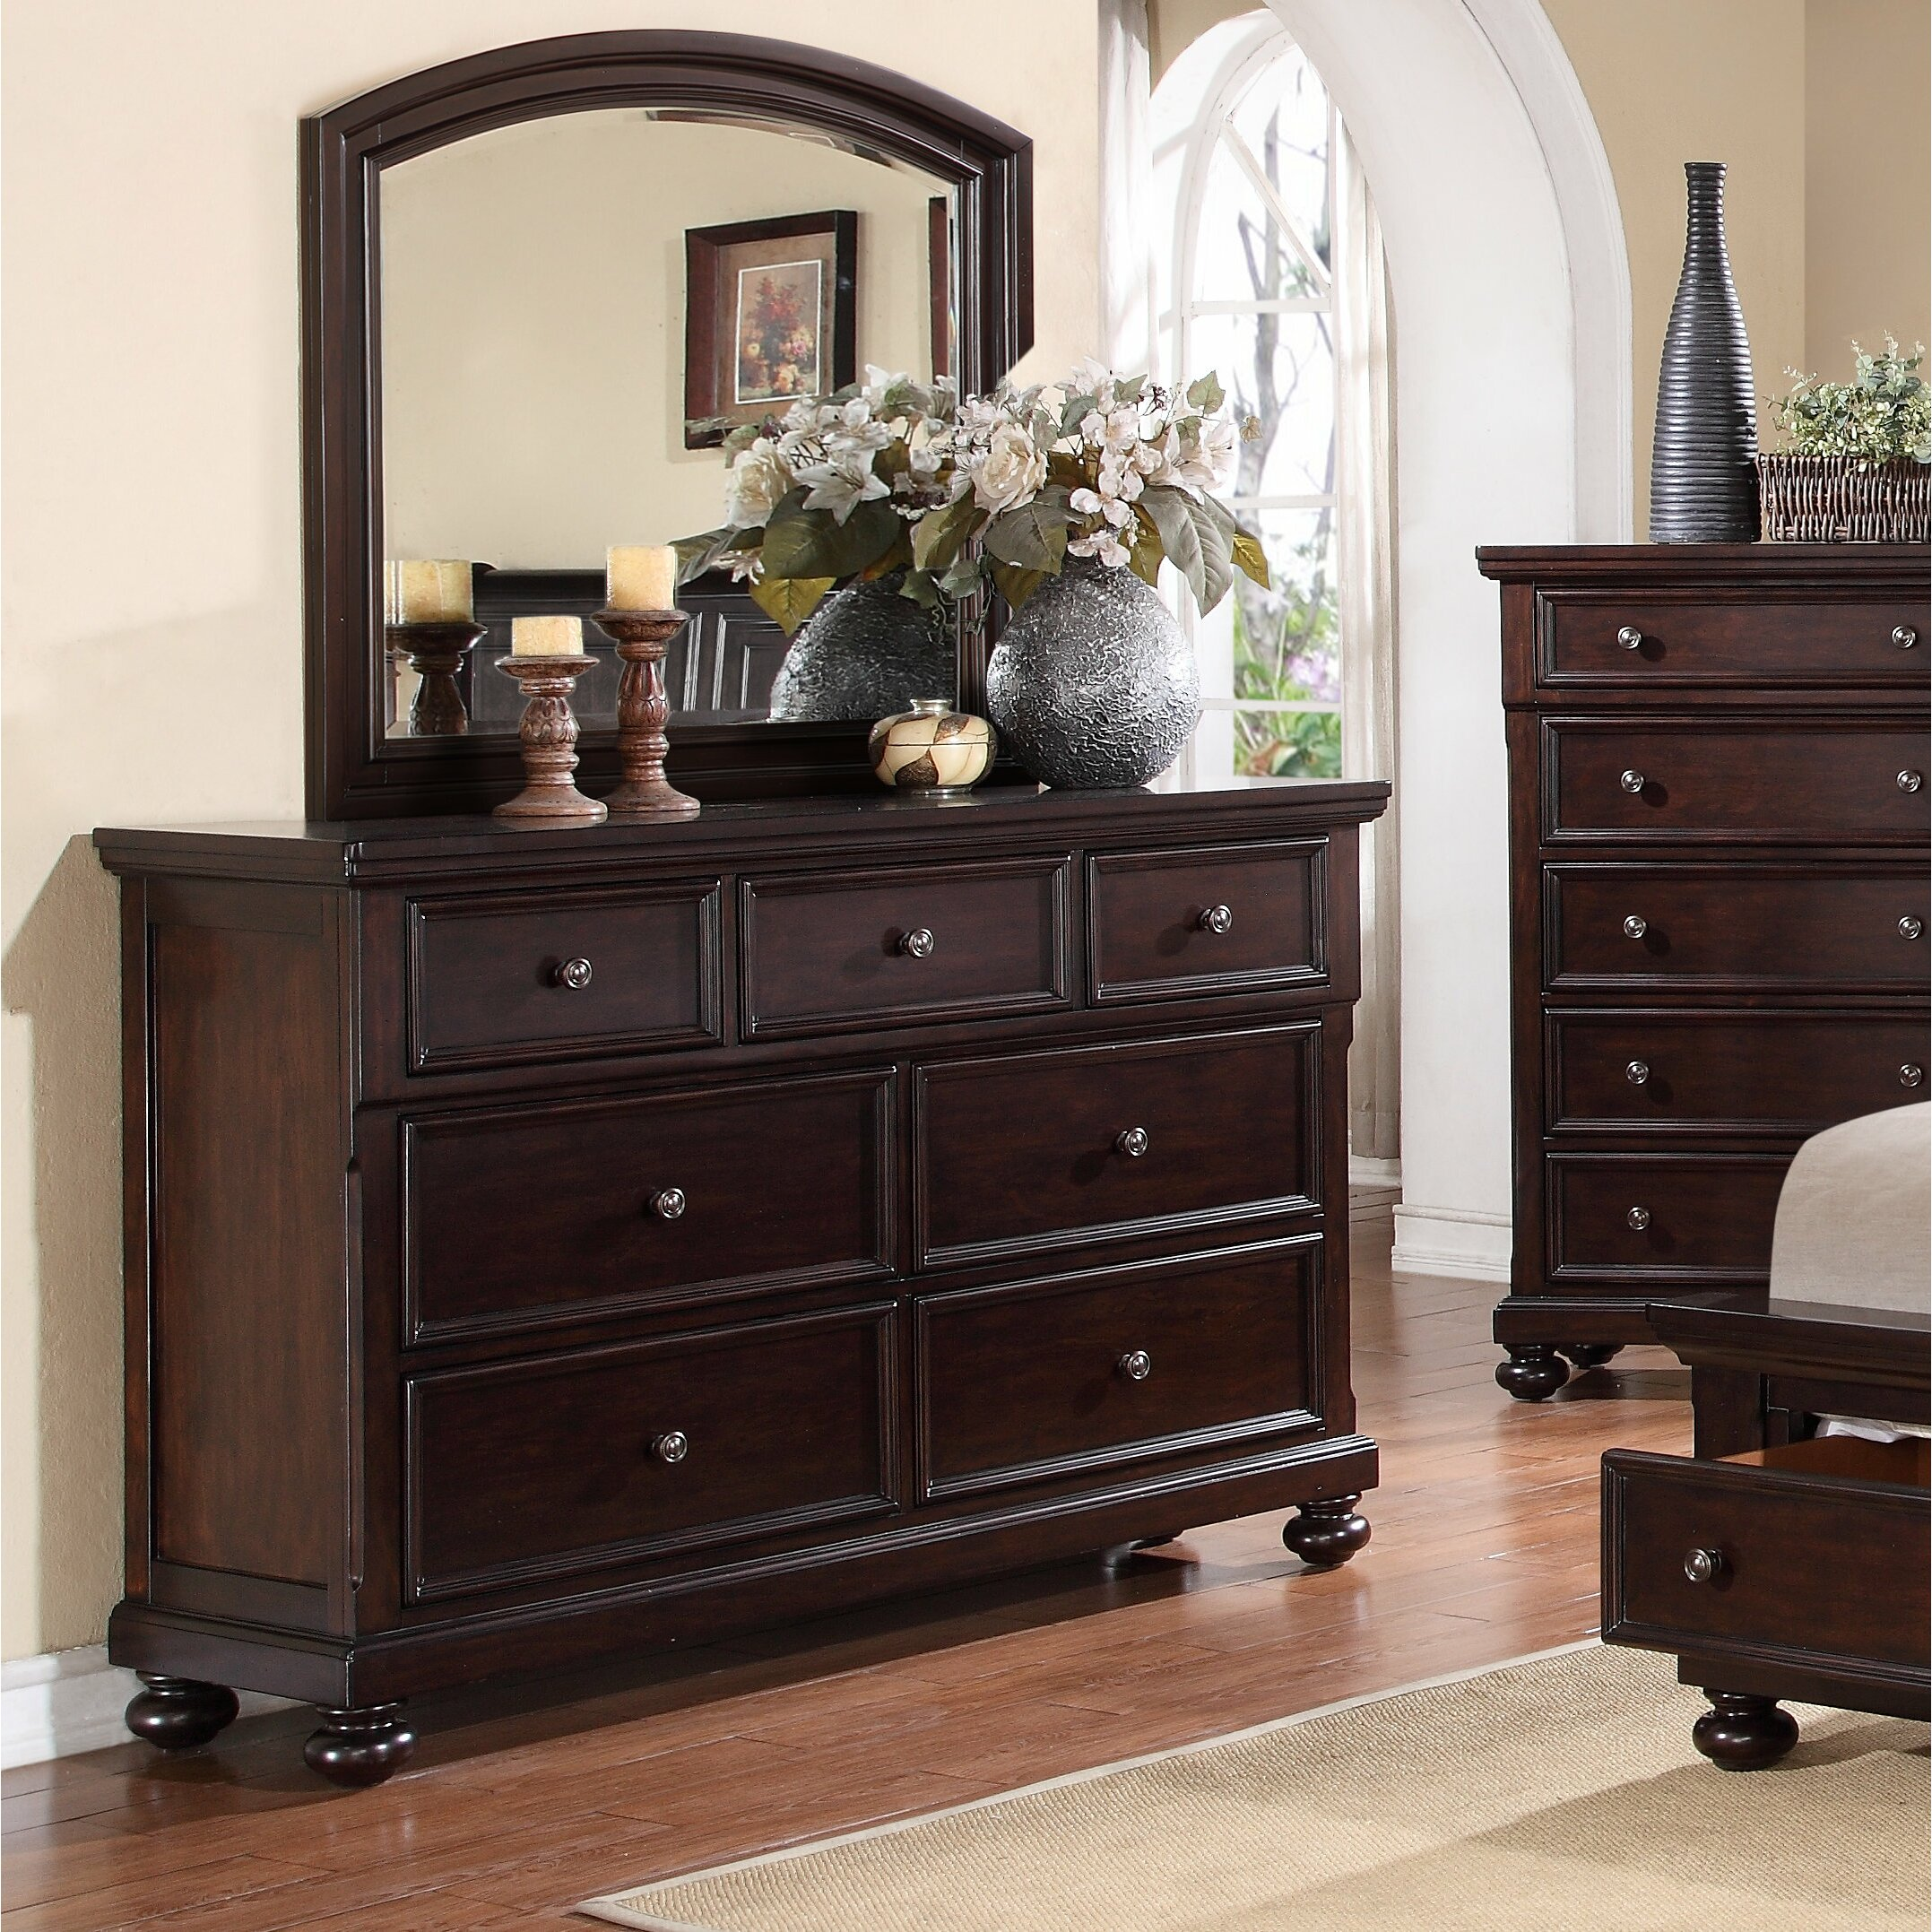 Roundhill Furniture Brishland Platform 5 Piece Bedroom Set